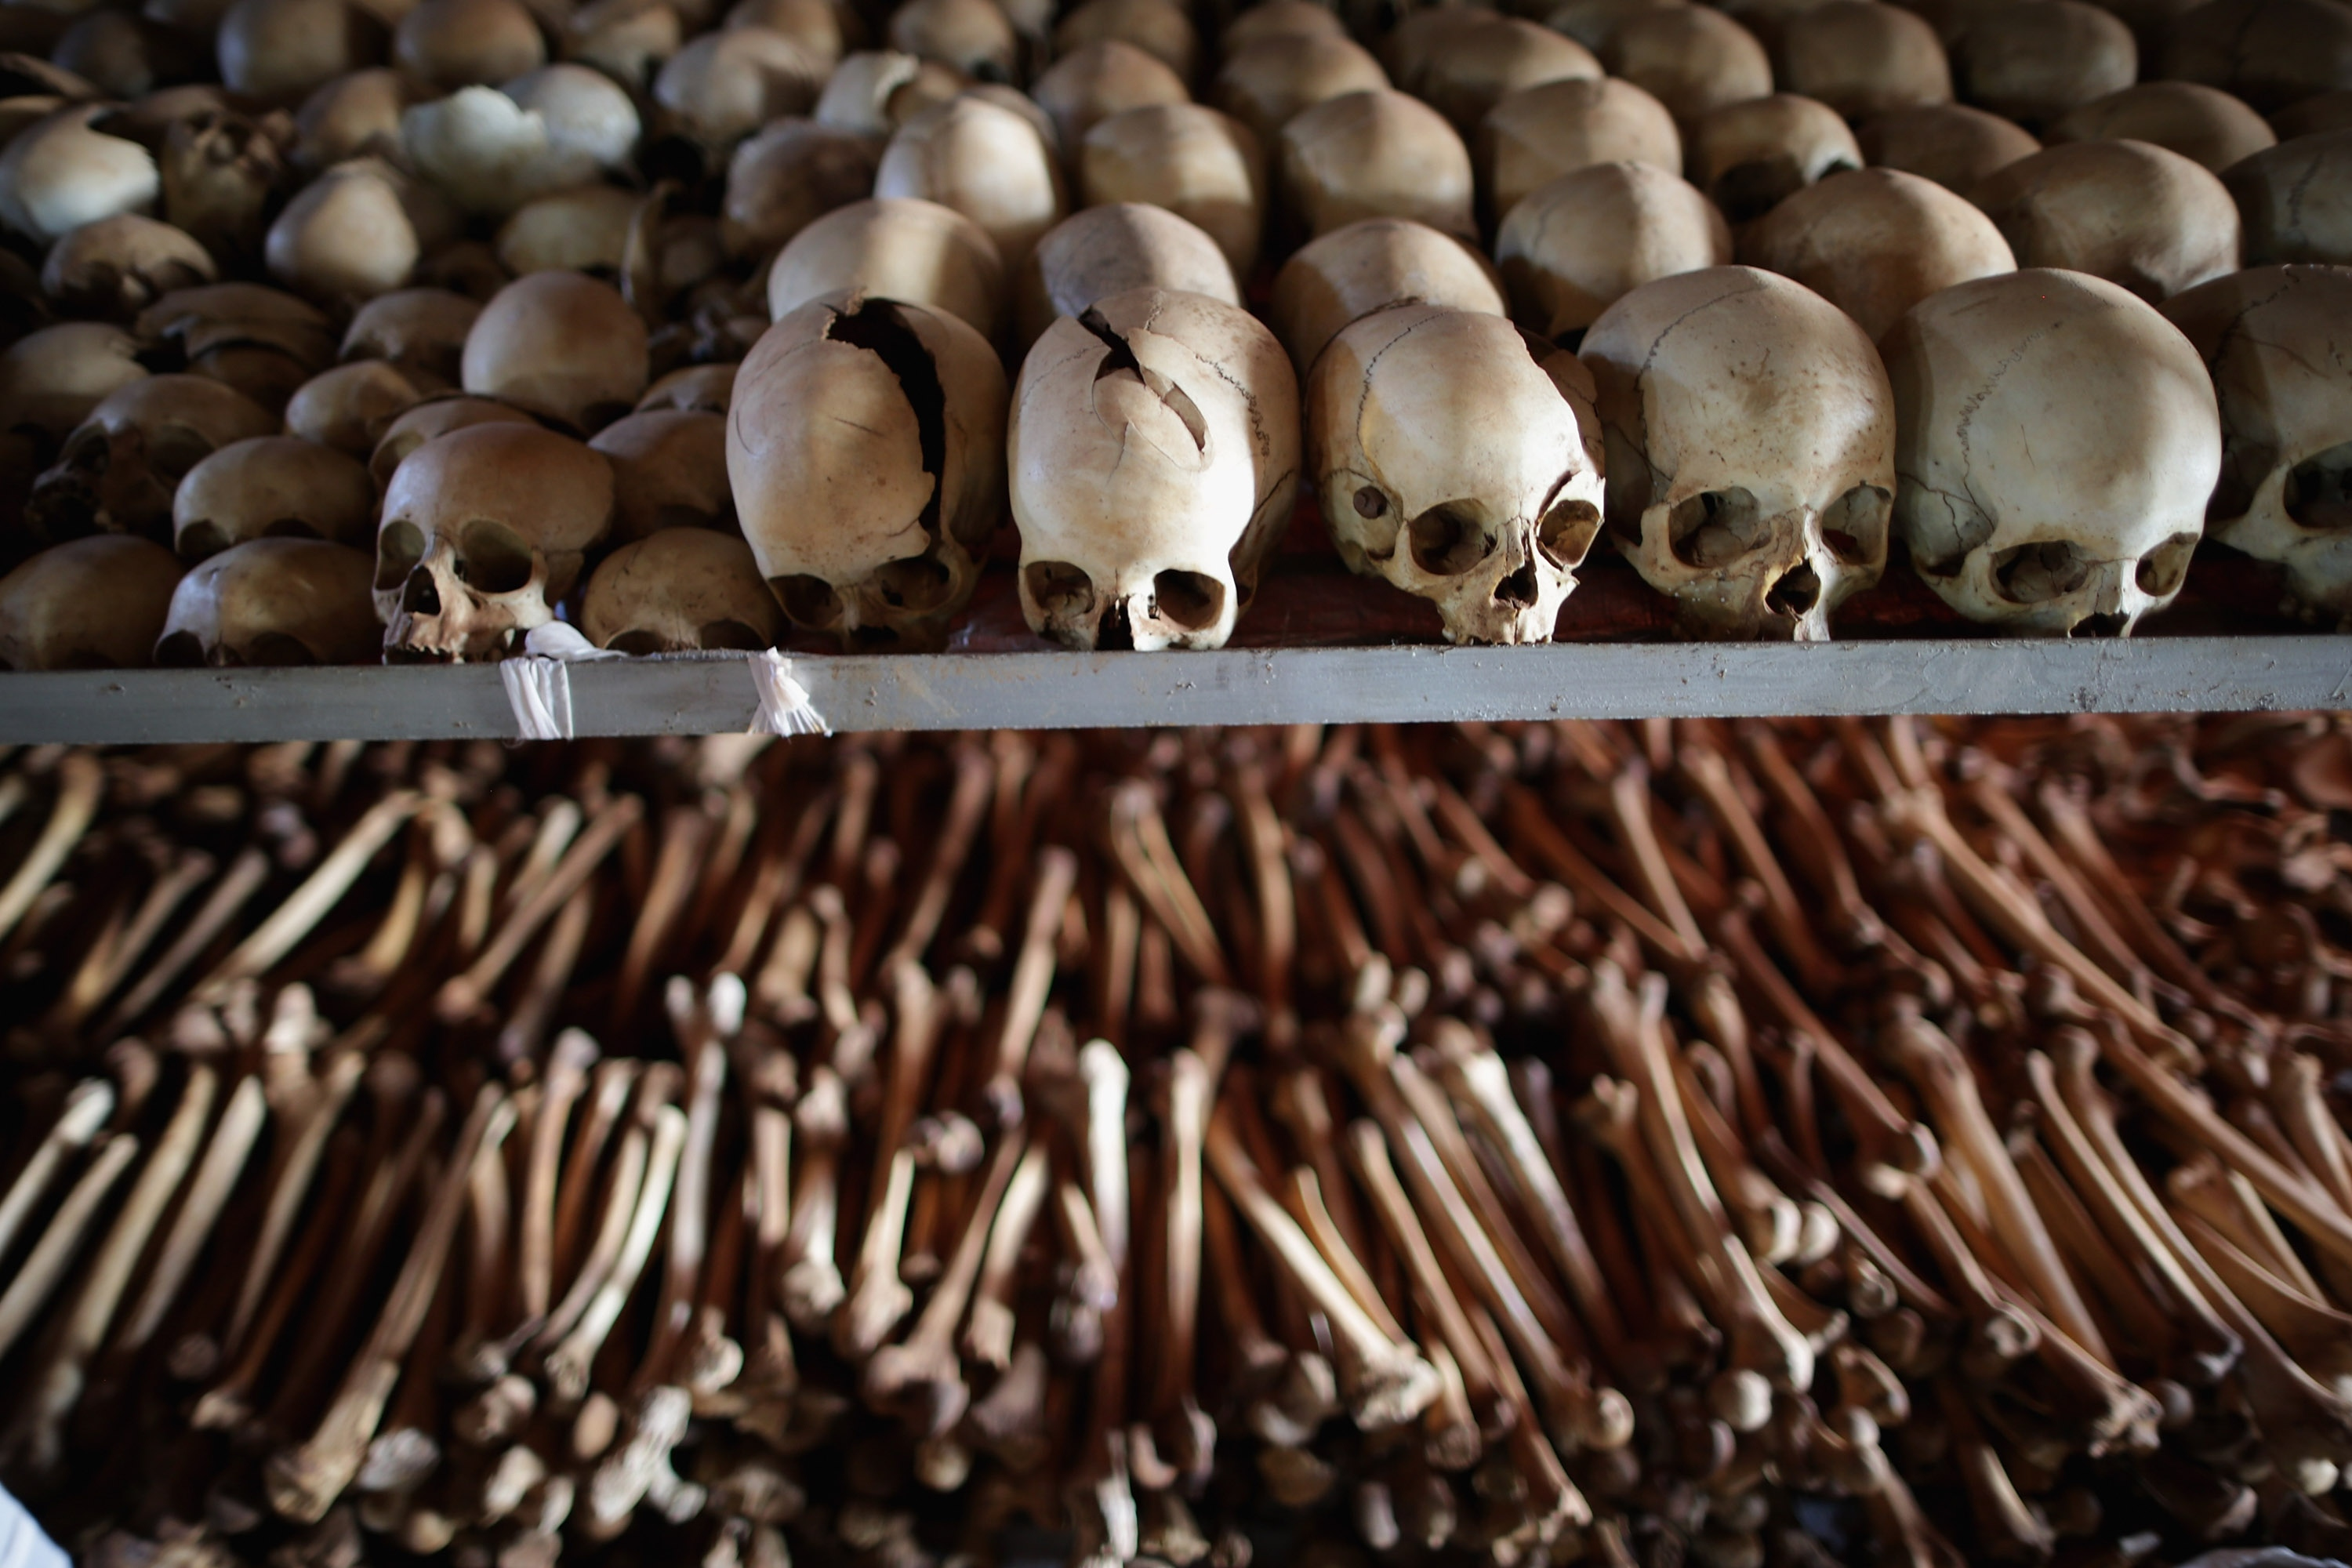 churches became sites of massacres during rwandan genocide